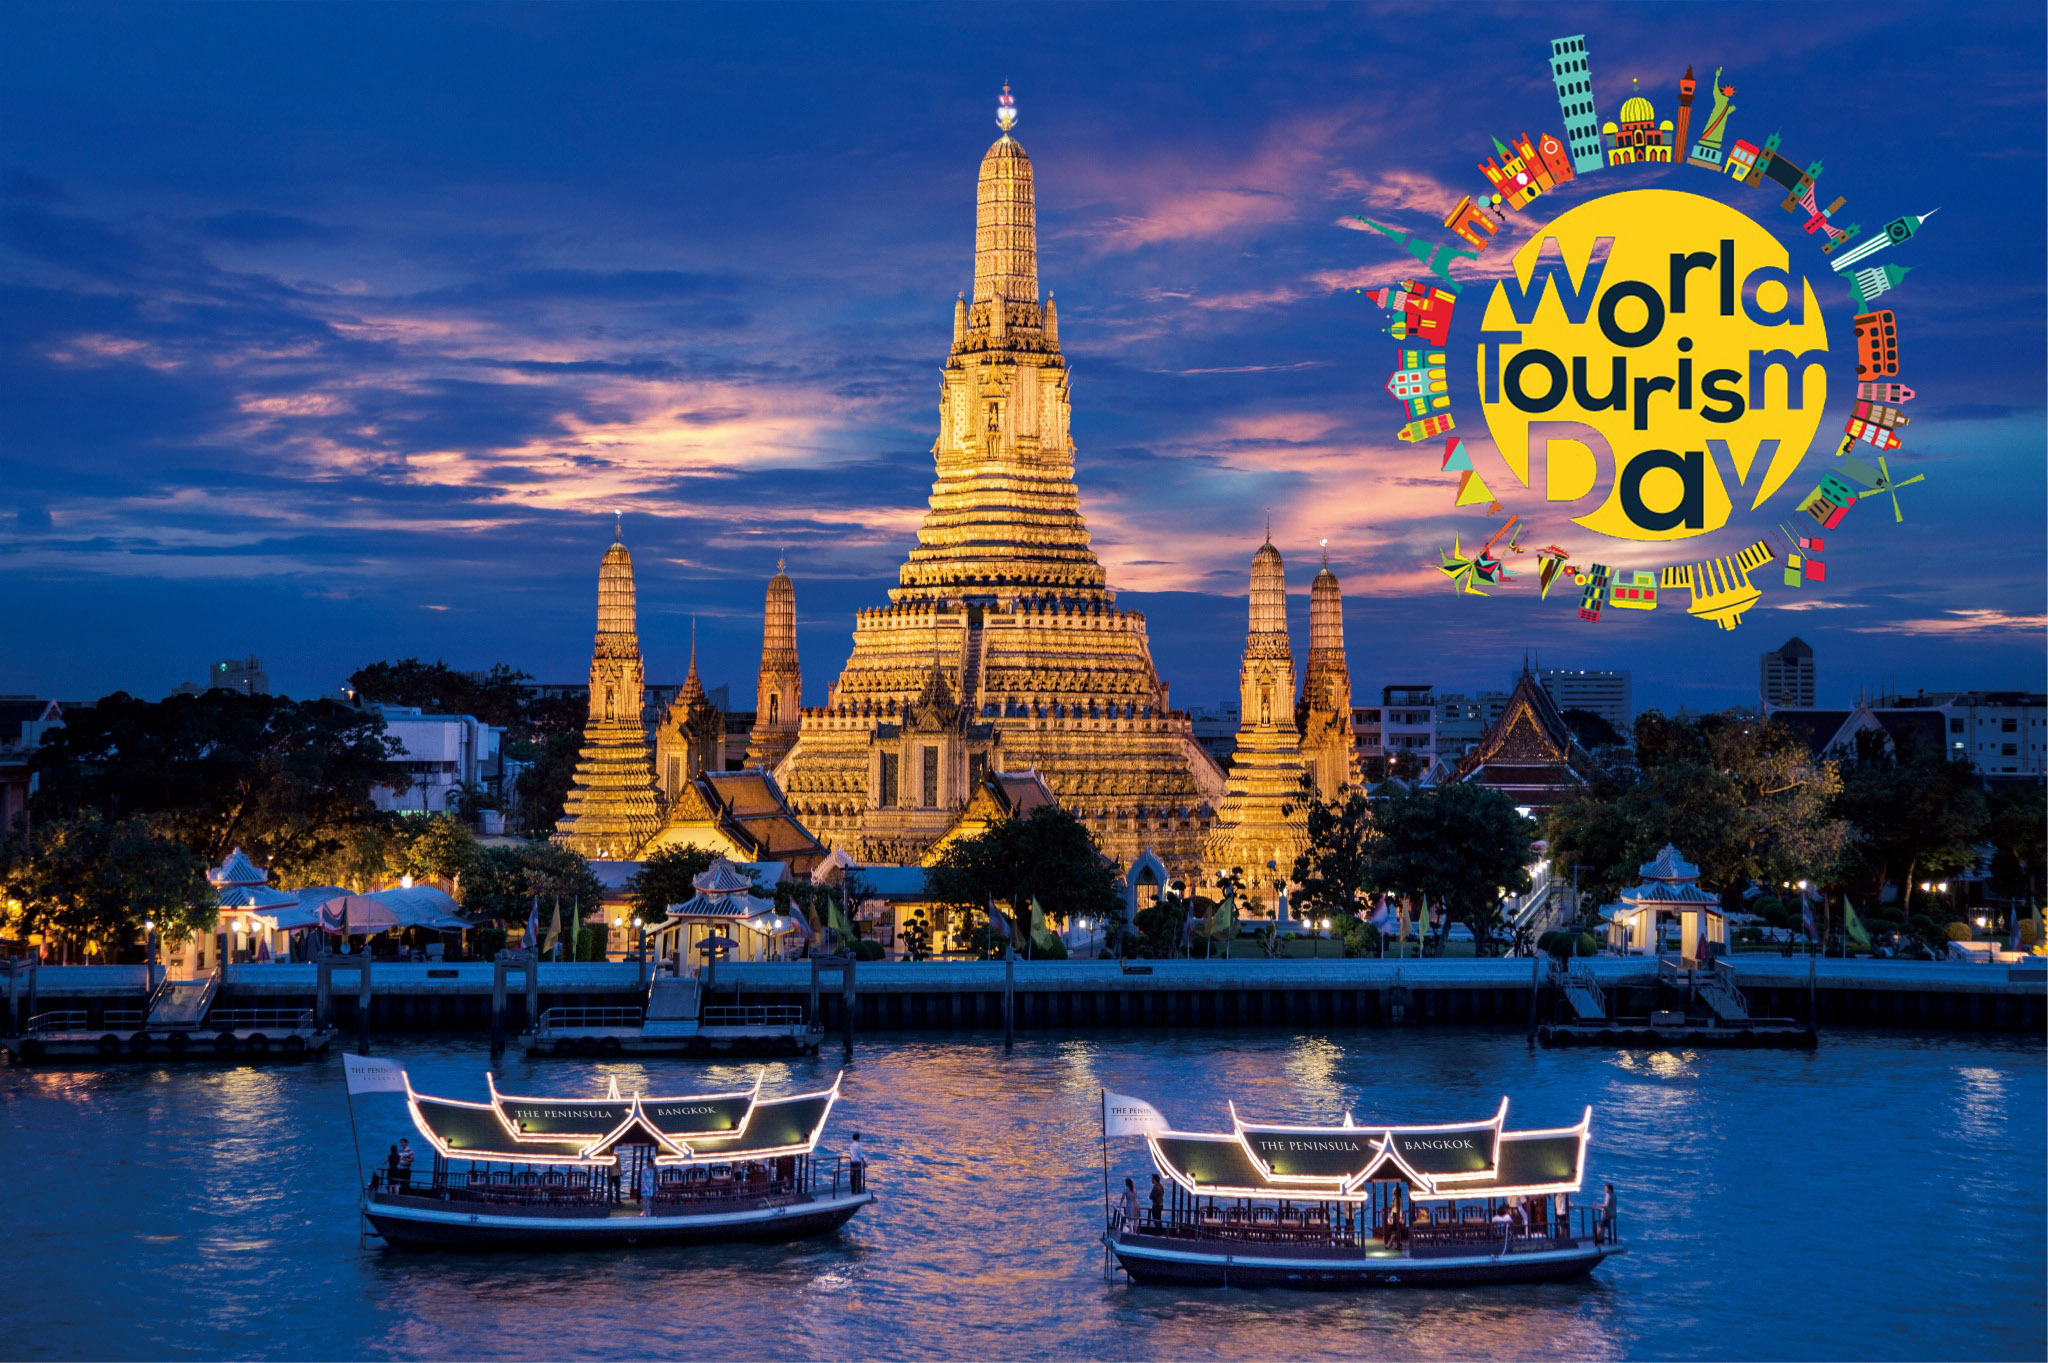 world tourism day thailand hd desktop wallpaper